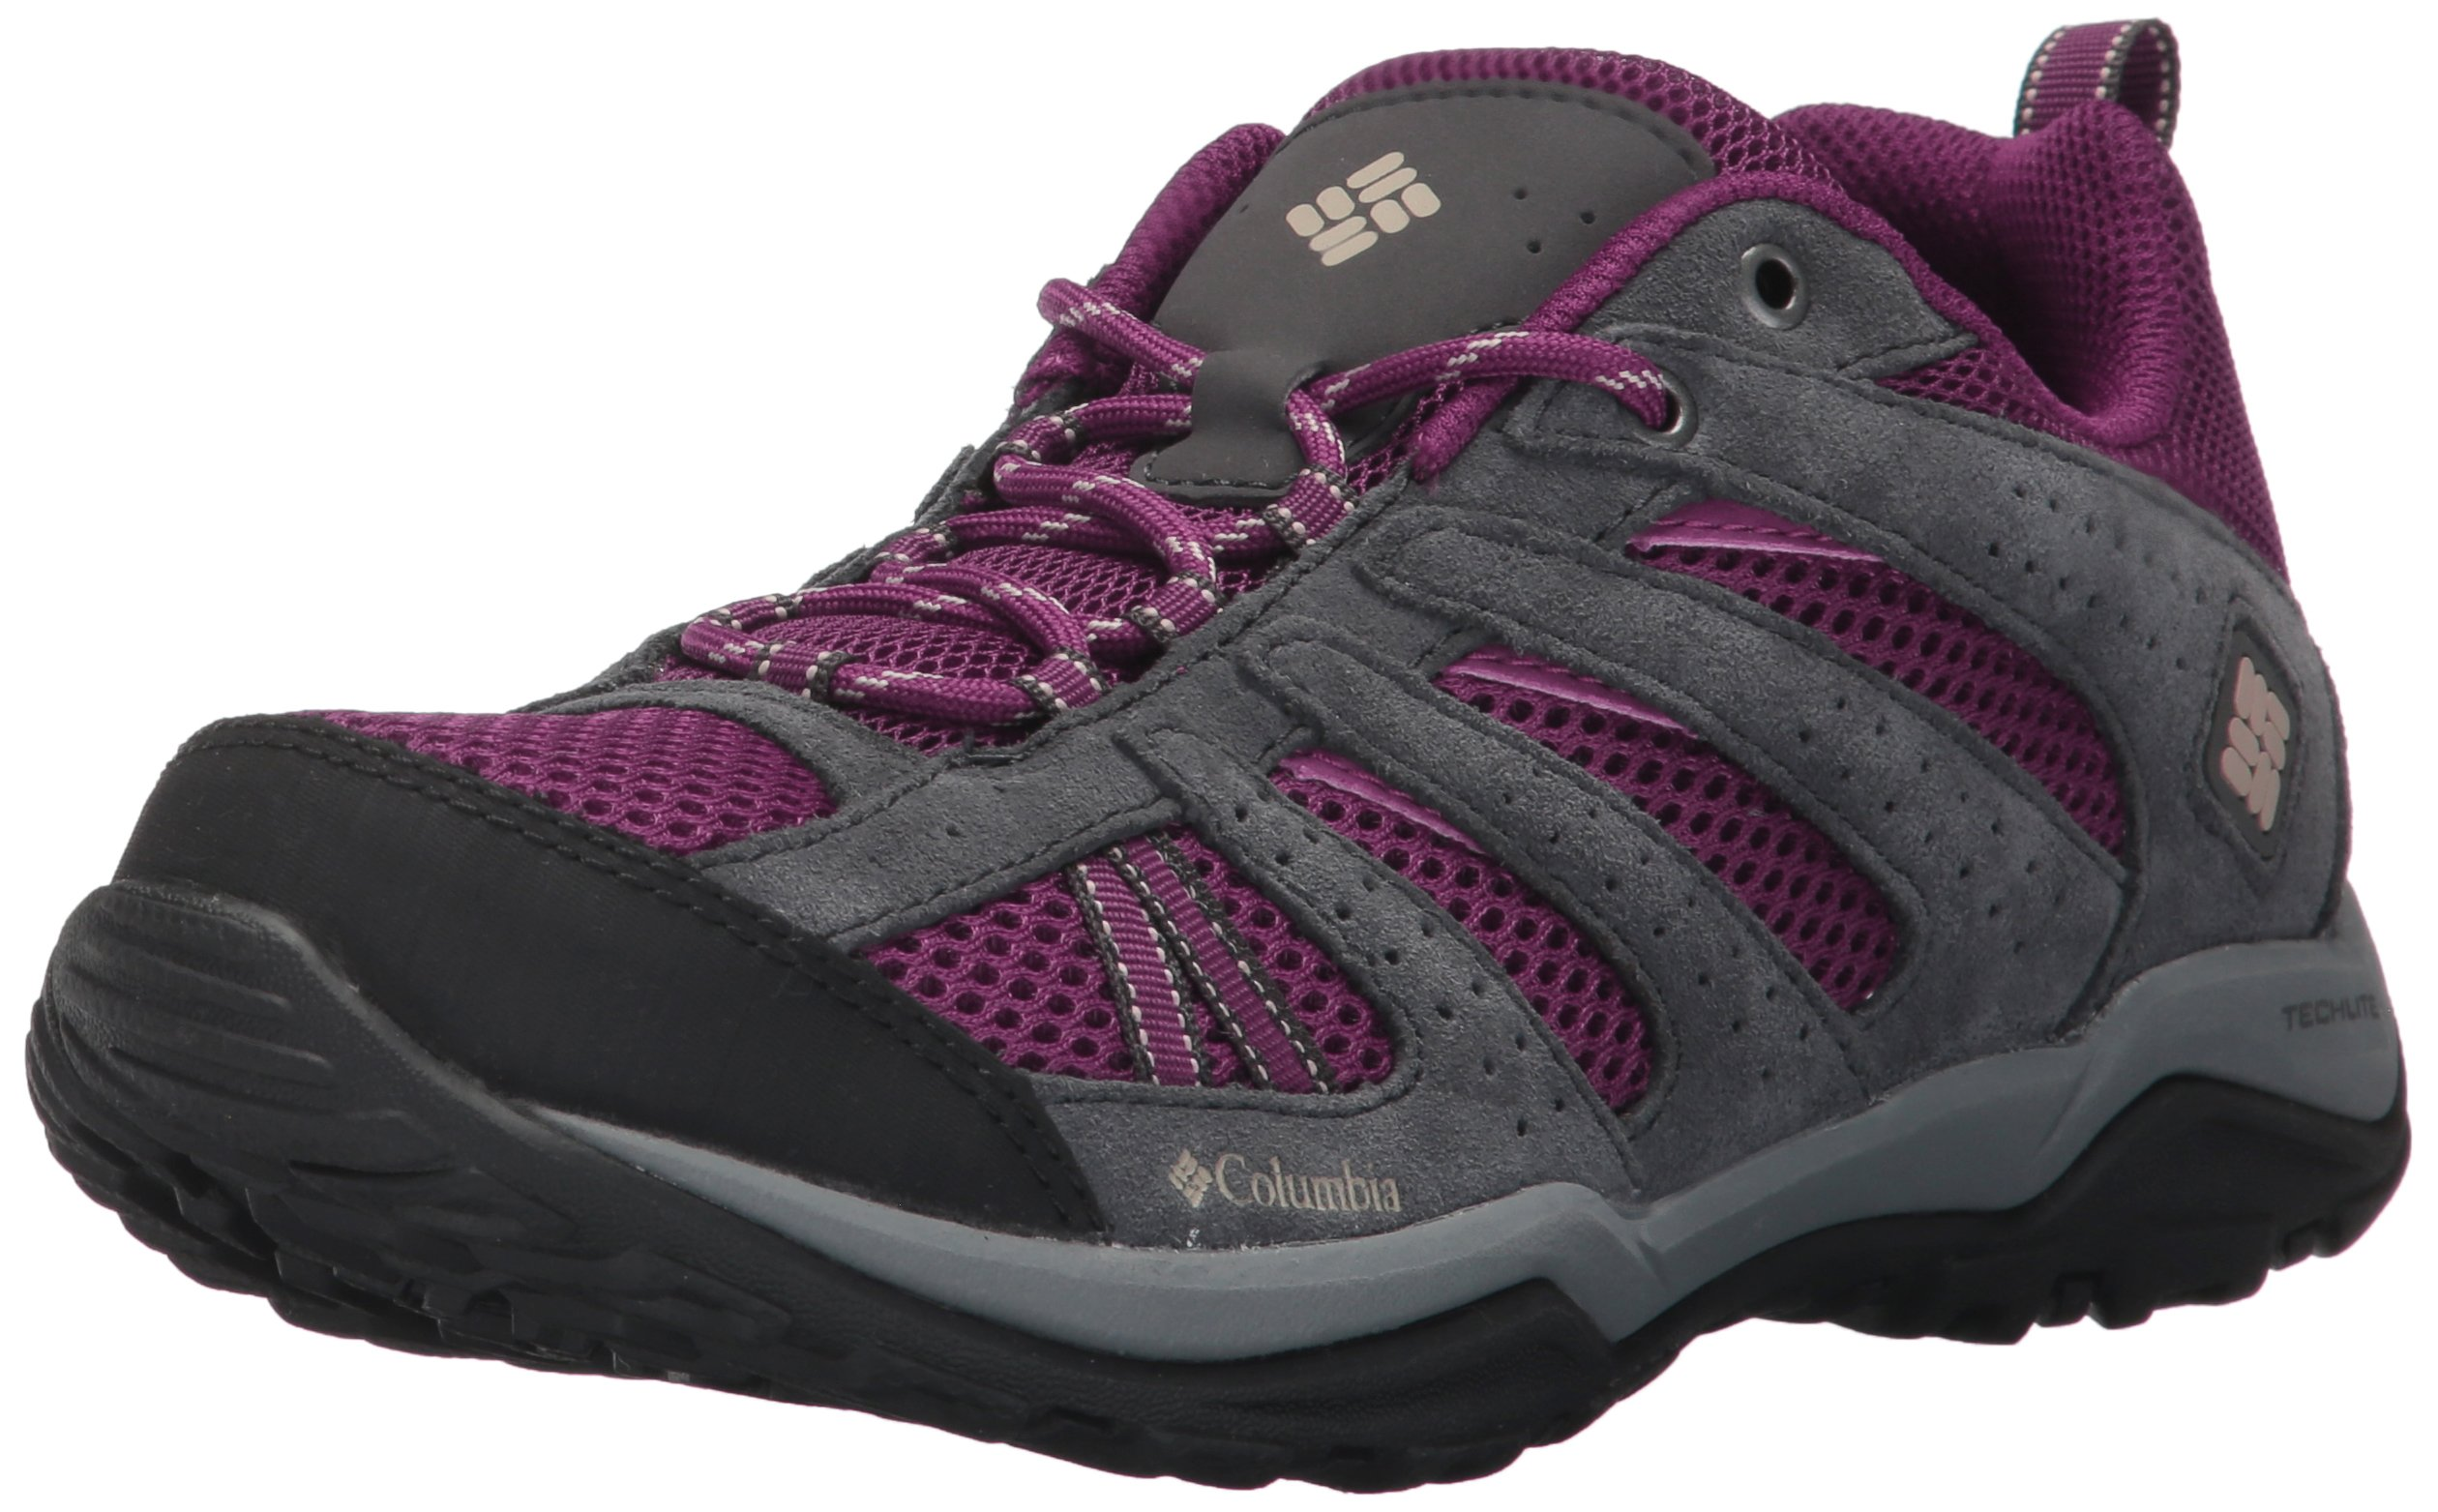 Columbia Women's Dakota Drifter Hiking Shoe, Dark Raspberry, Ancient Fossil, 5 B US